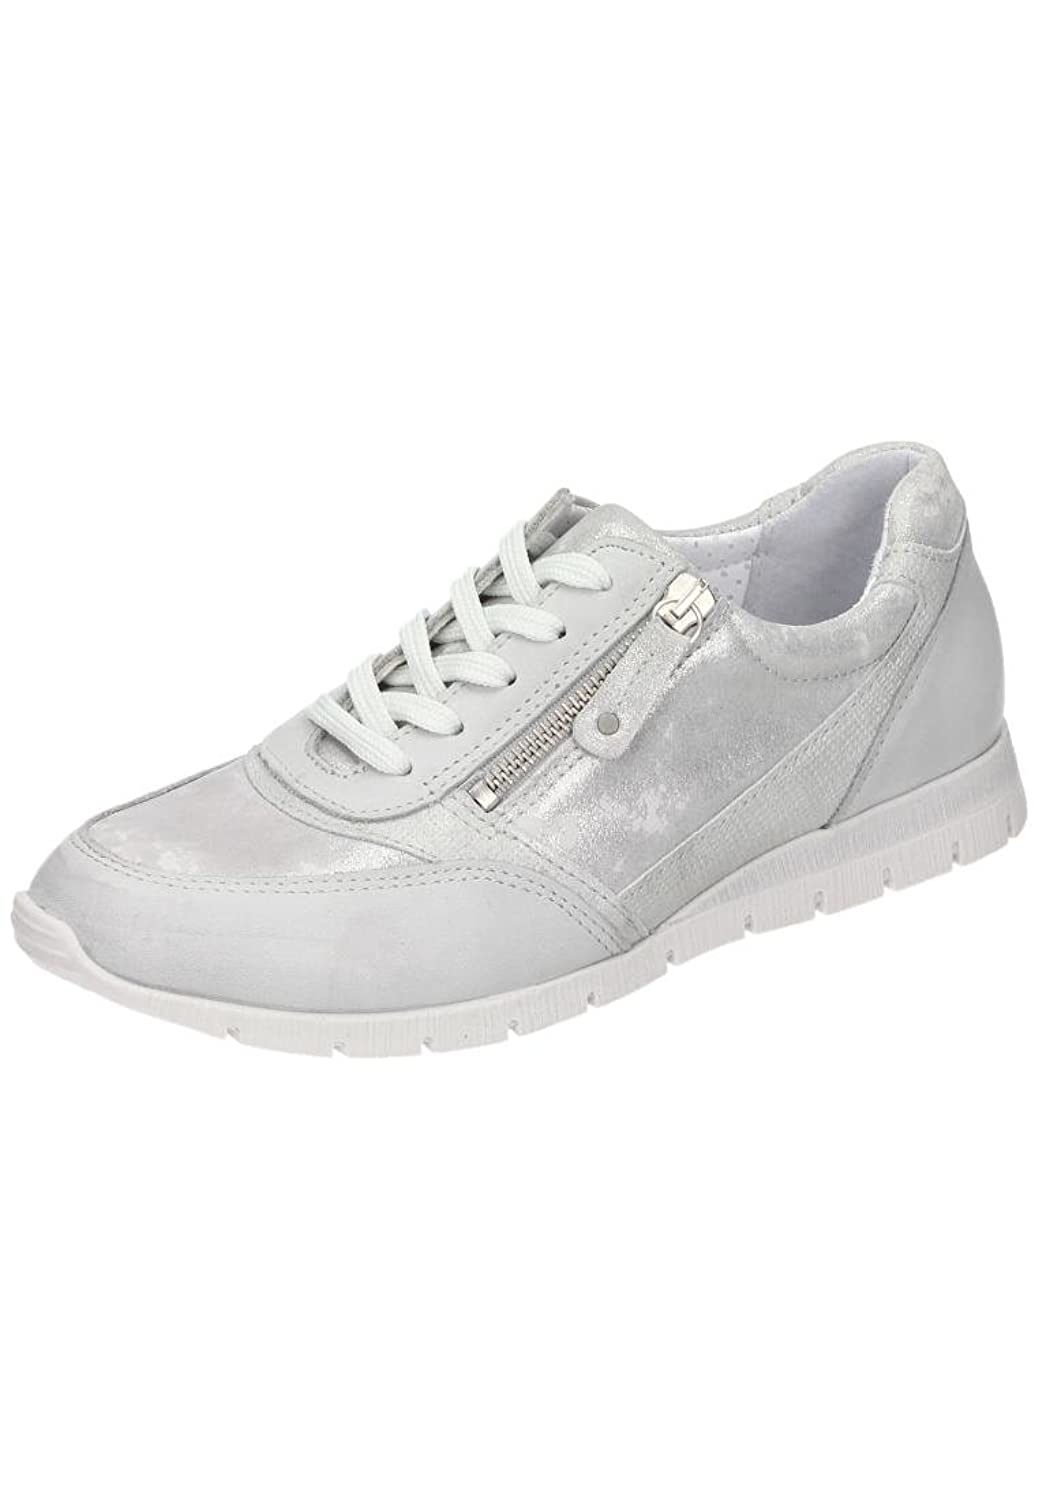 Comfortabel womens women lace up shoes silver